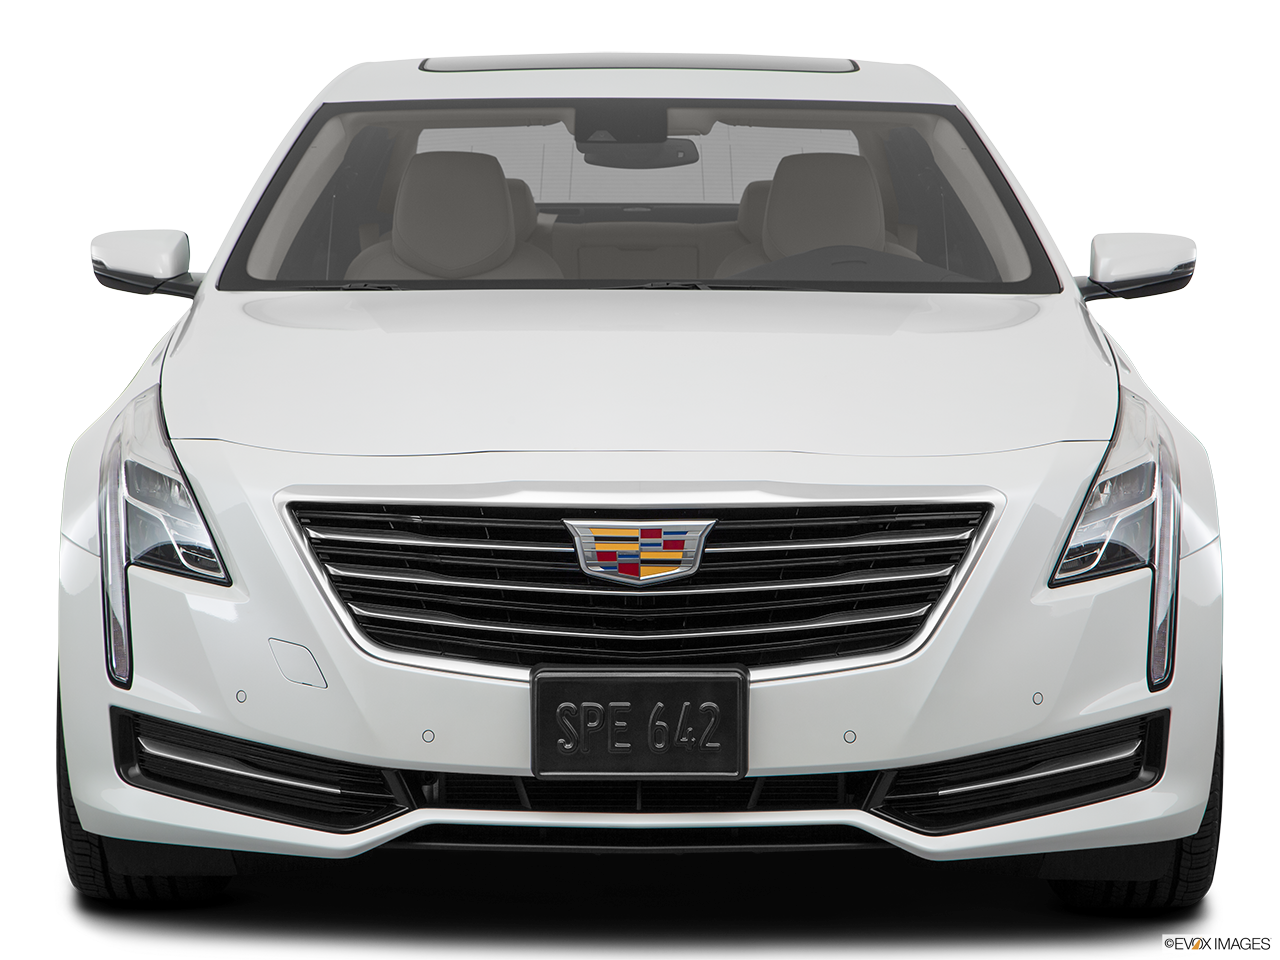 Front view of the Cadillac CT6